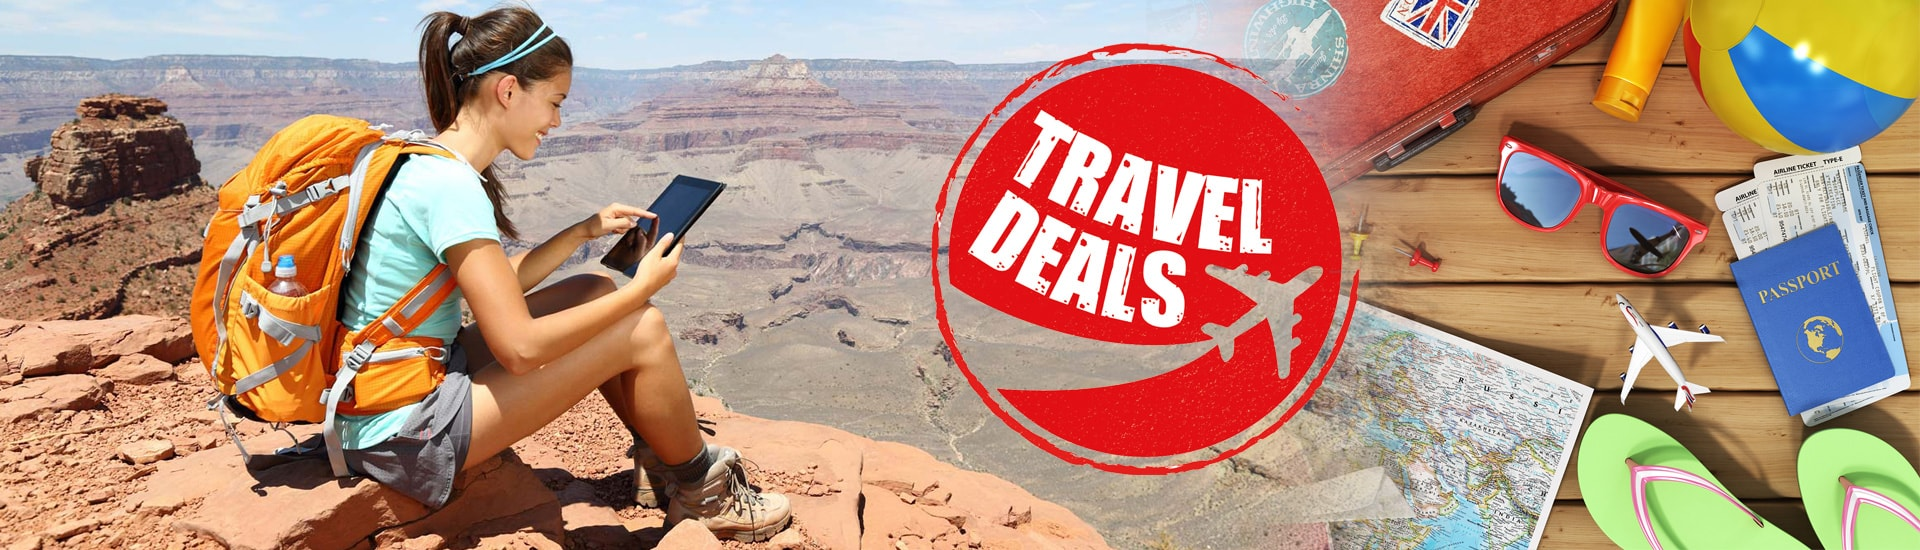 Europe travel deals europe special tour packages 2018 for Best europe travel deals